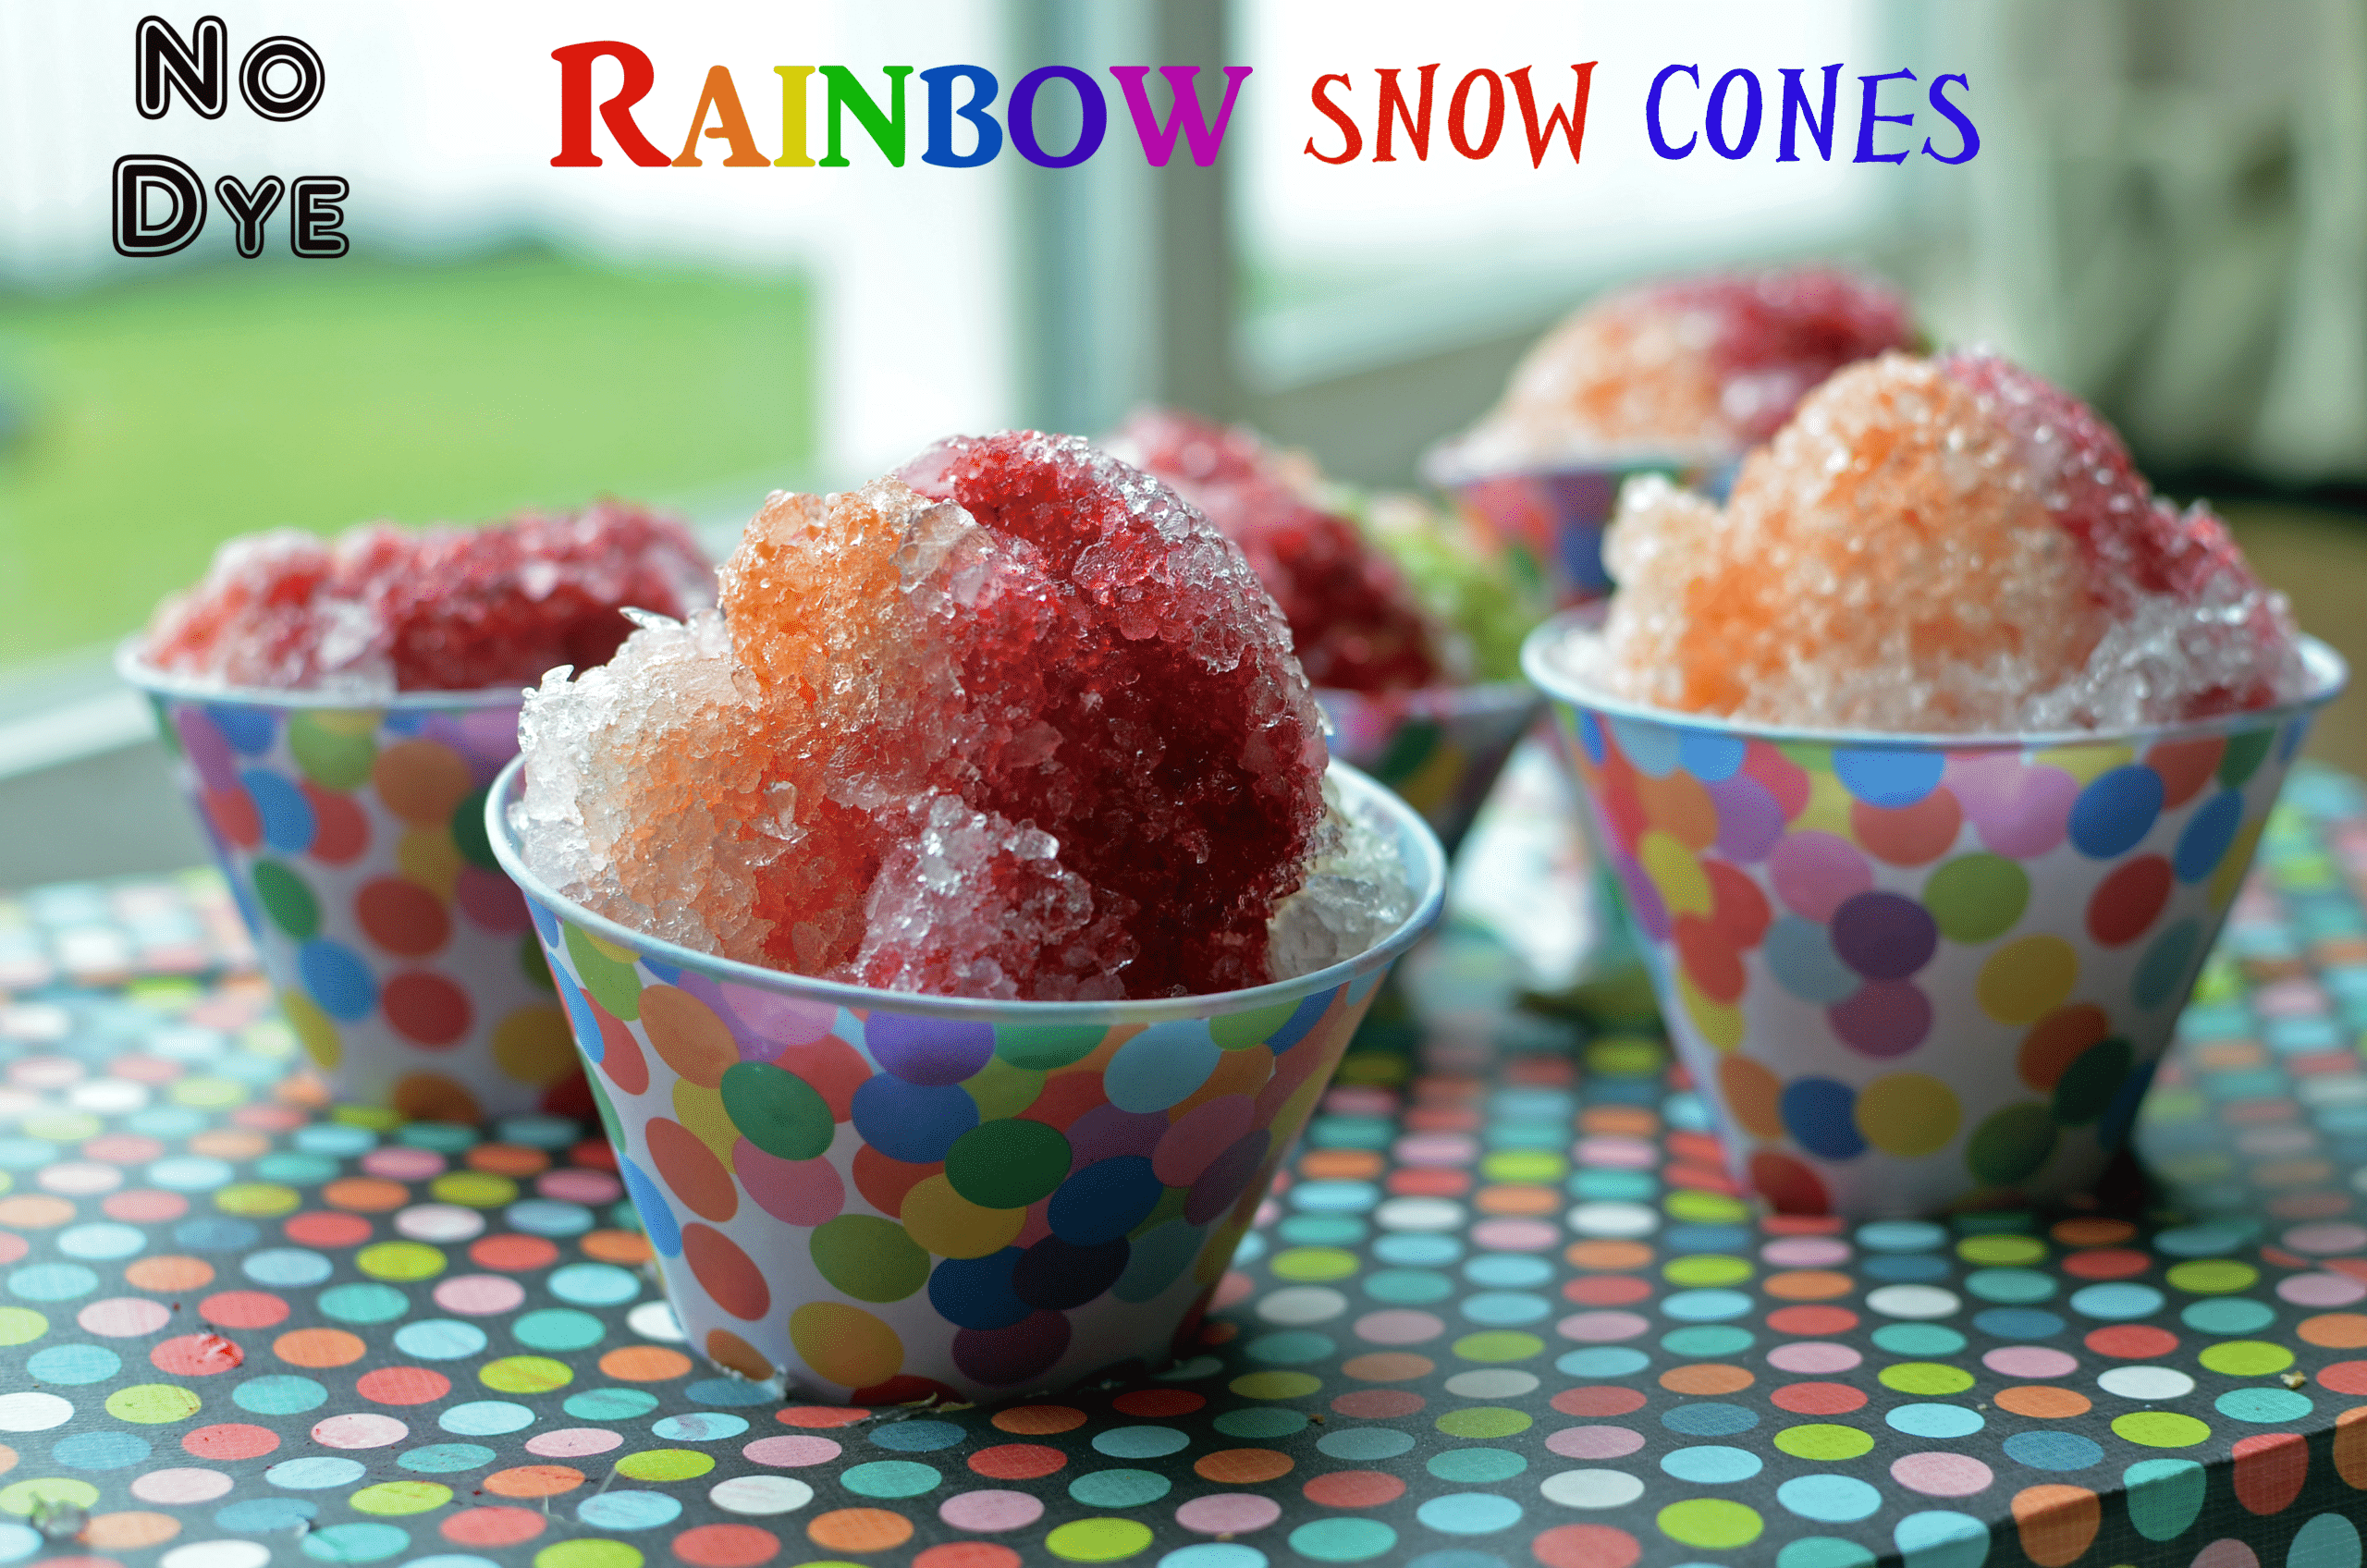 All Natural No Dye Rainbow Snow Cones Healthy Ideas For Kids